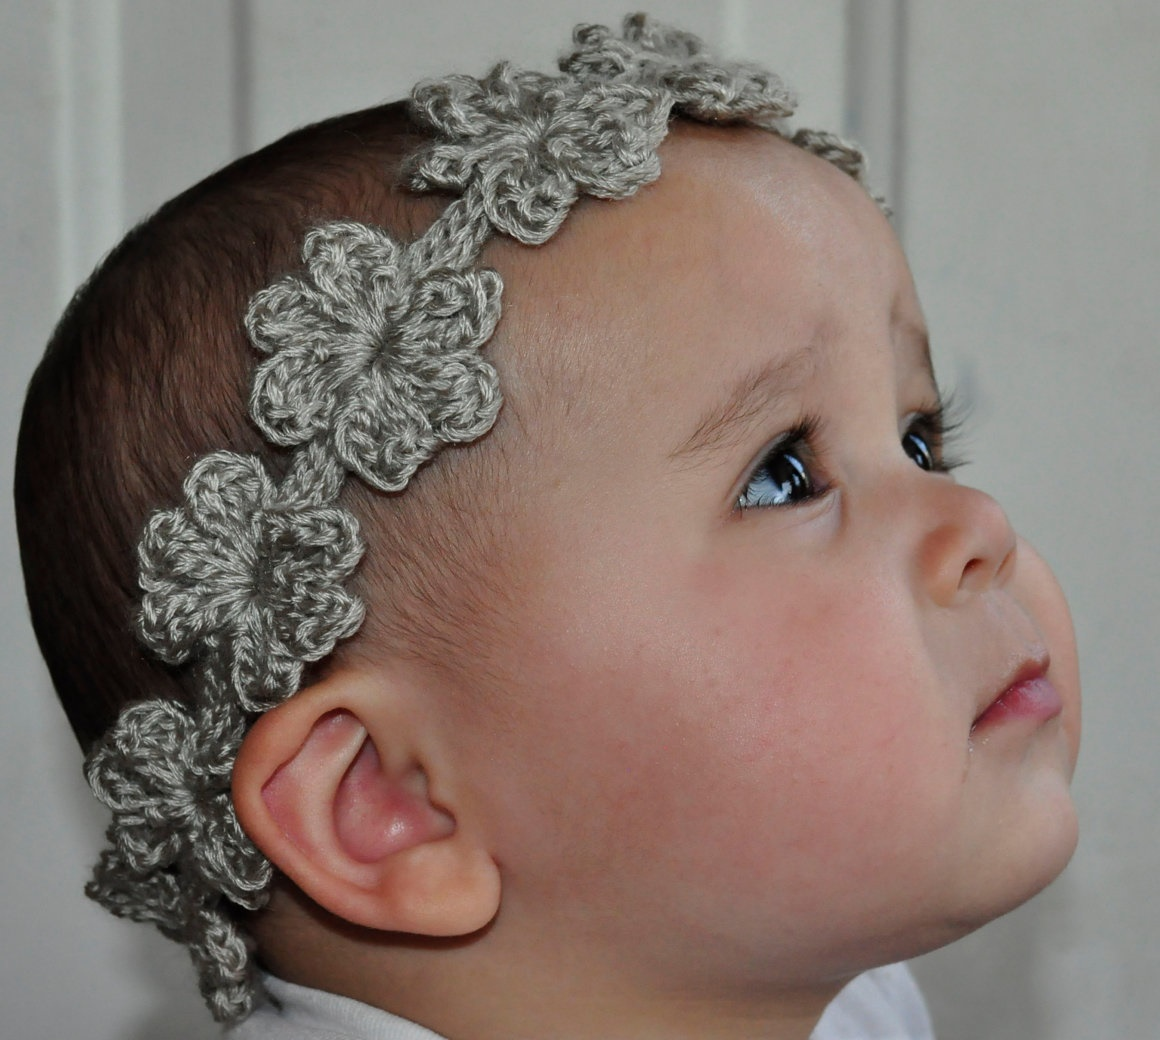 23 Cute Crochet Crown Patterns For Every Need - Patterns Hub